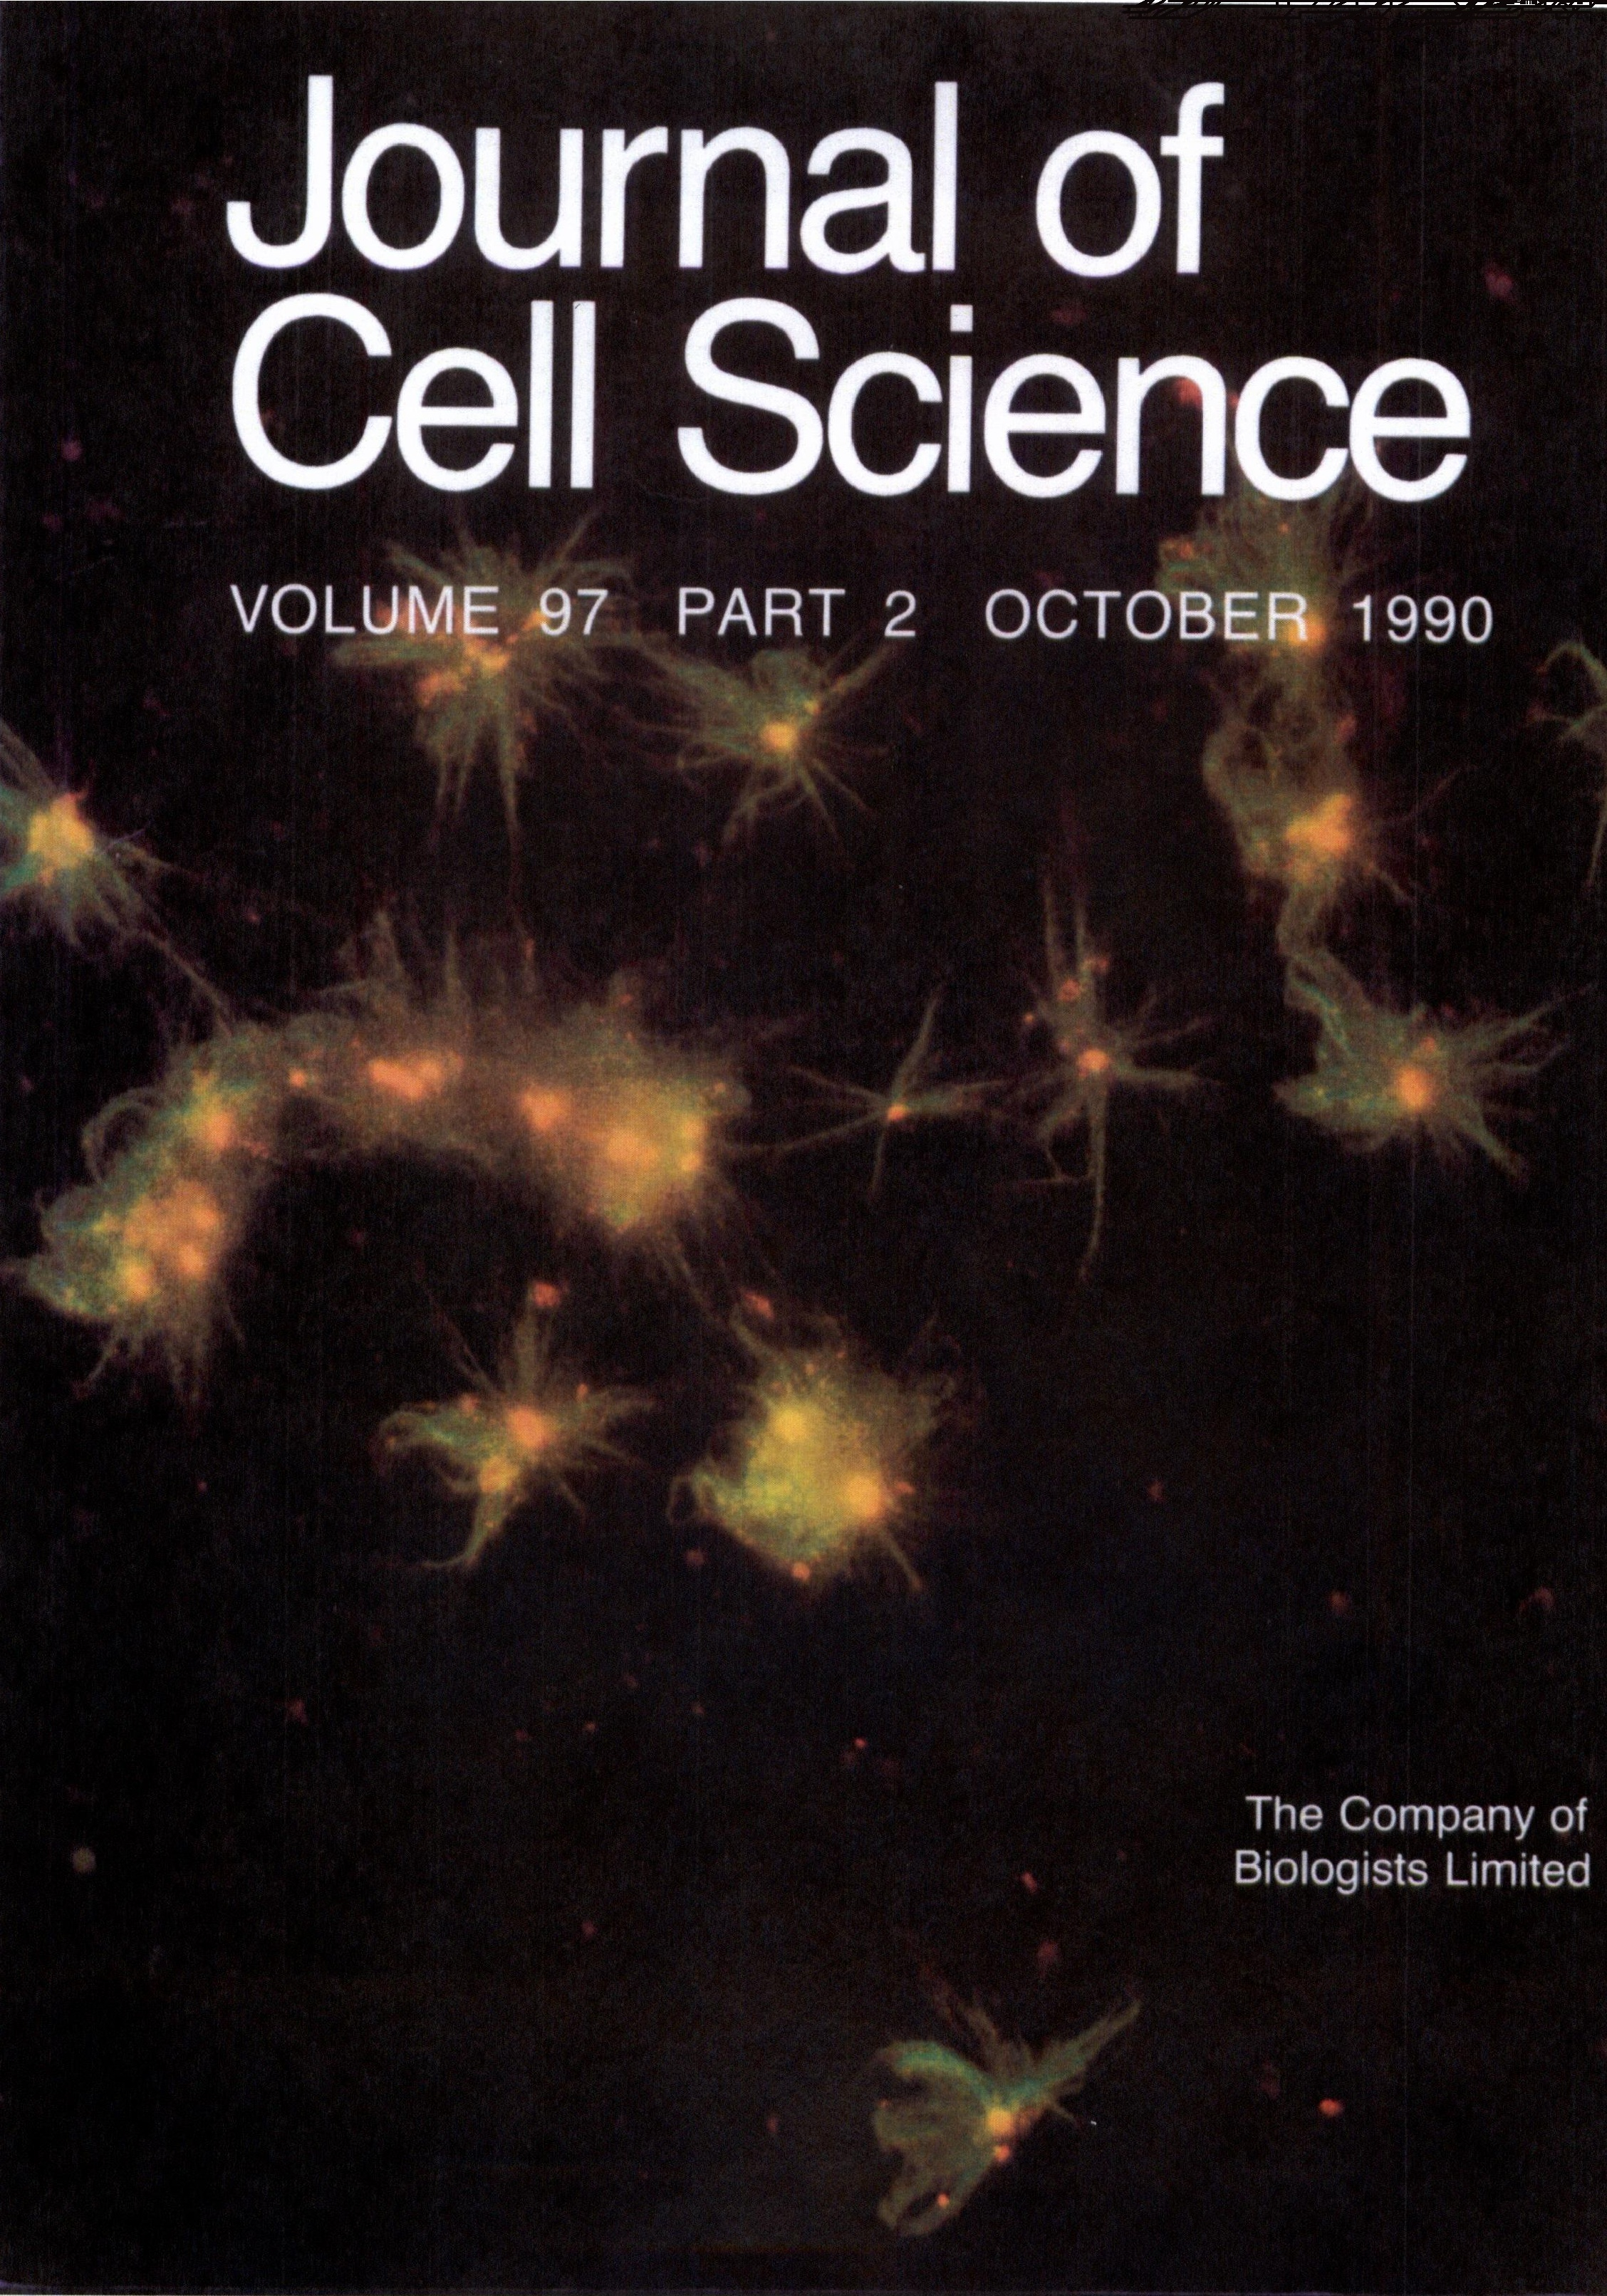 book [Article]